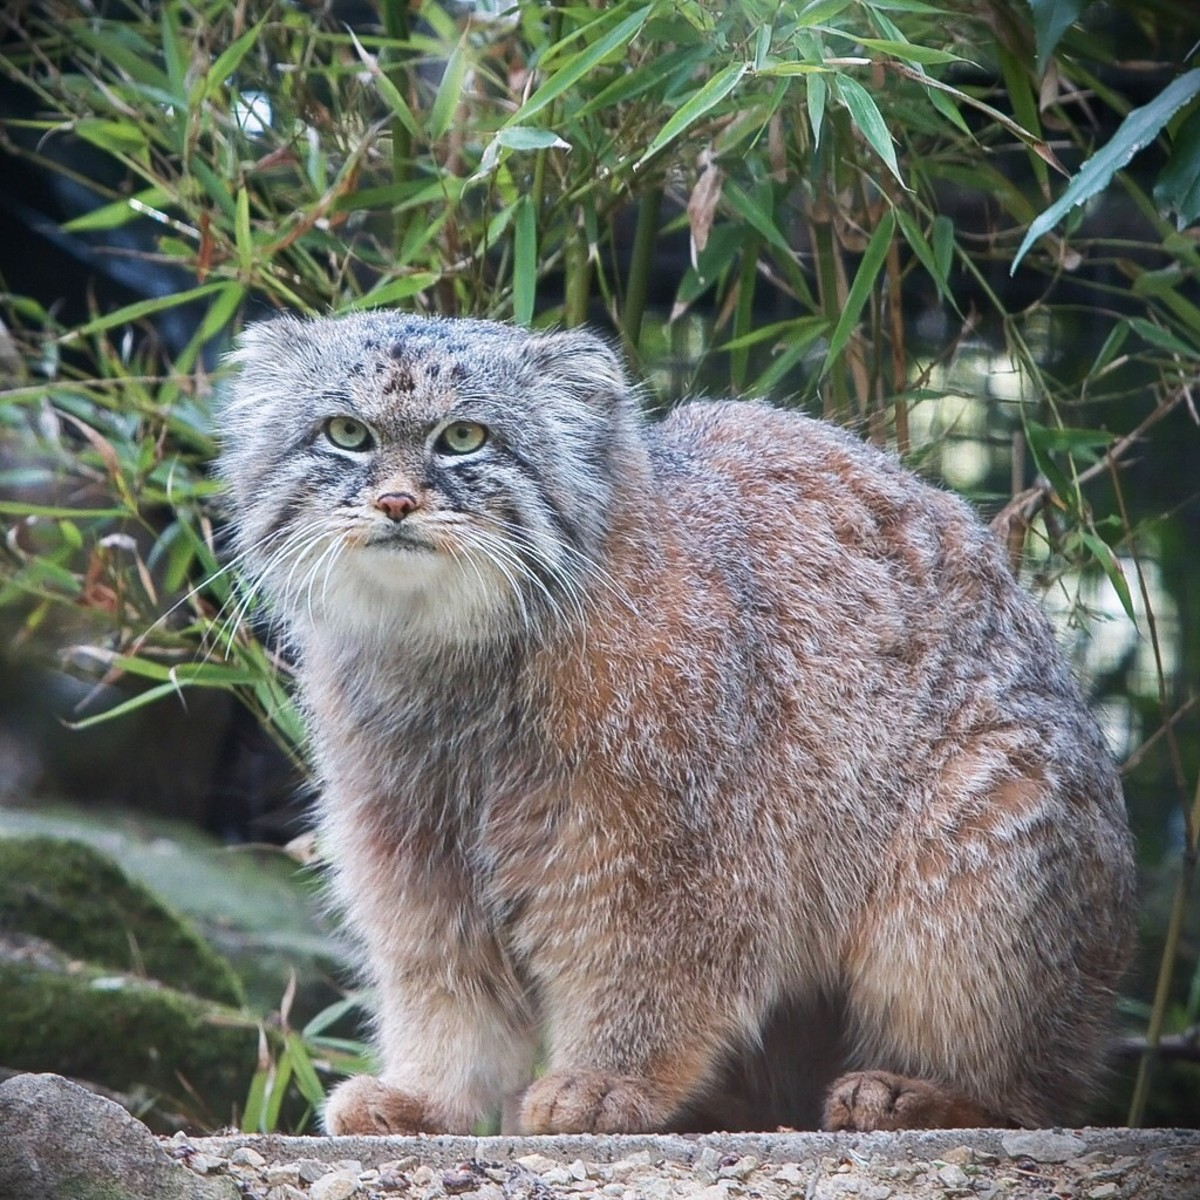 A Pallas cat at a zoo in Rotterdam